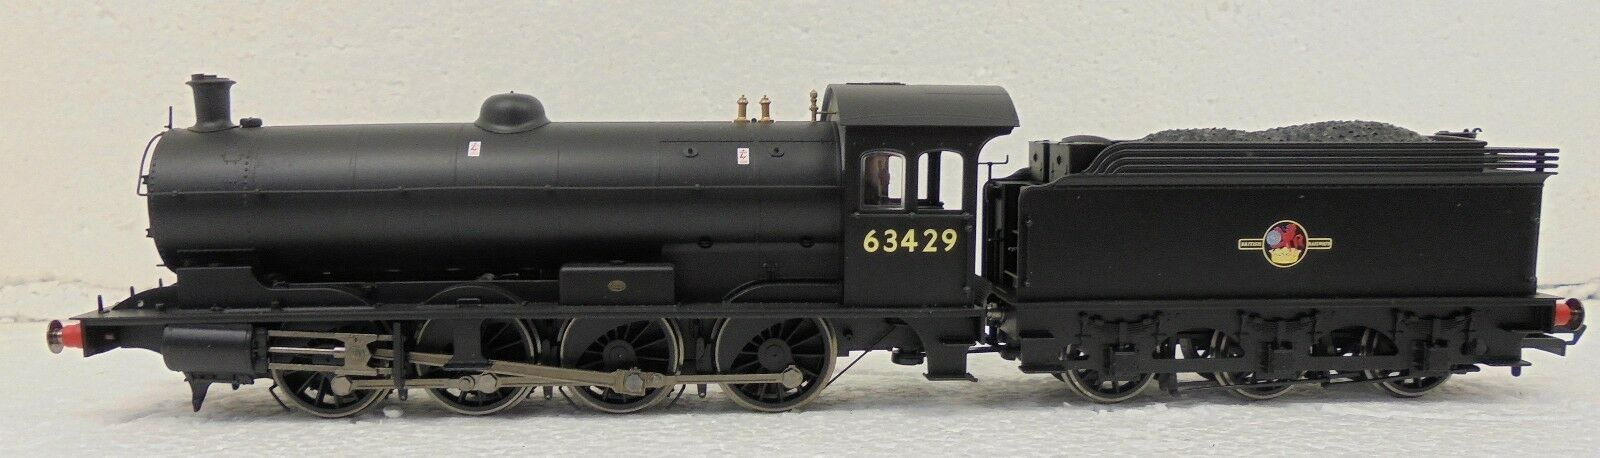 Hornby R3426 BR (Late) Class Q6 '63429'